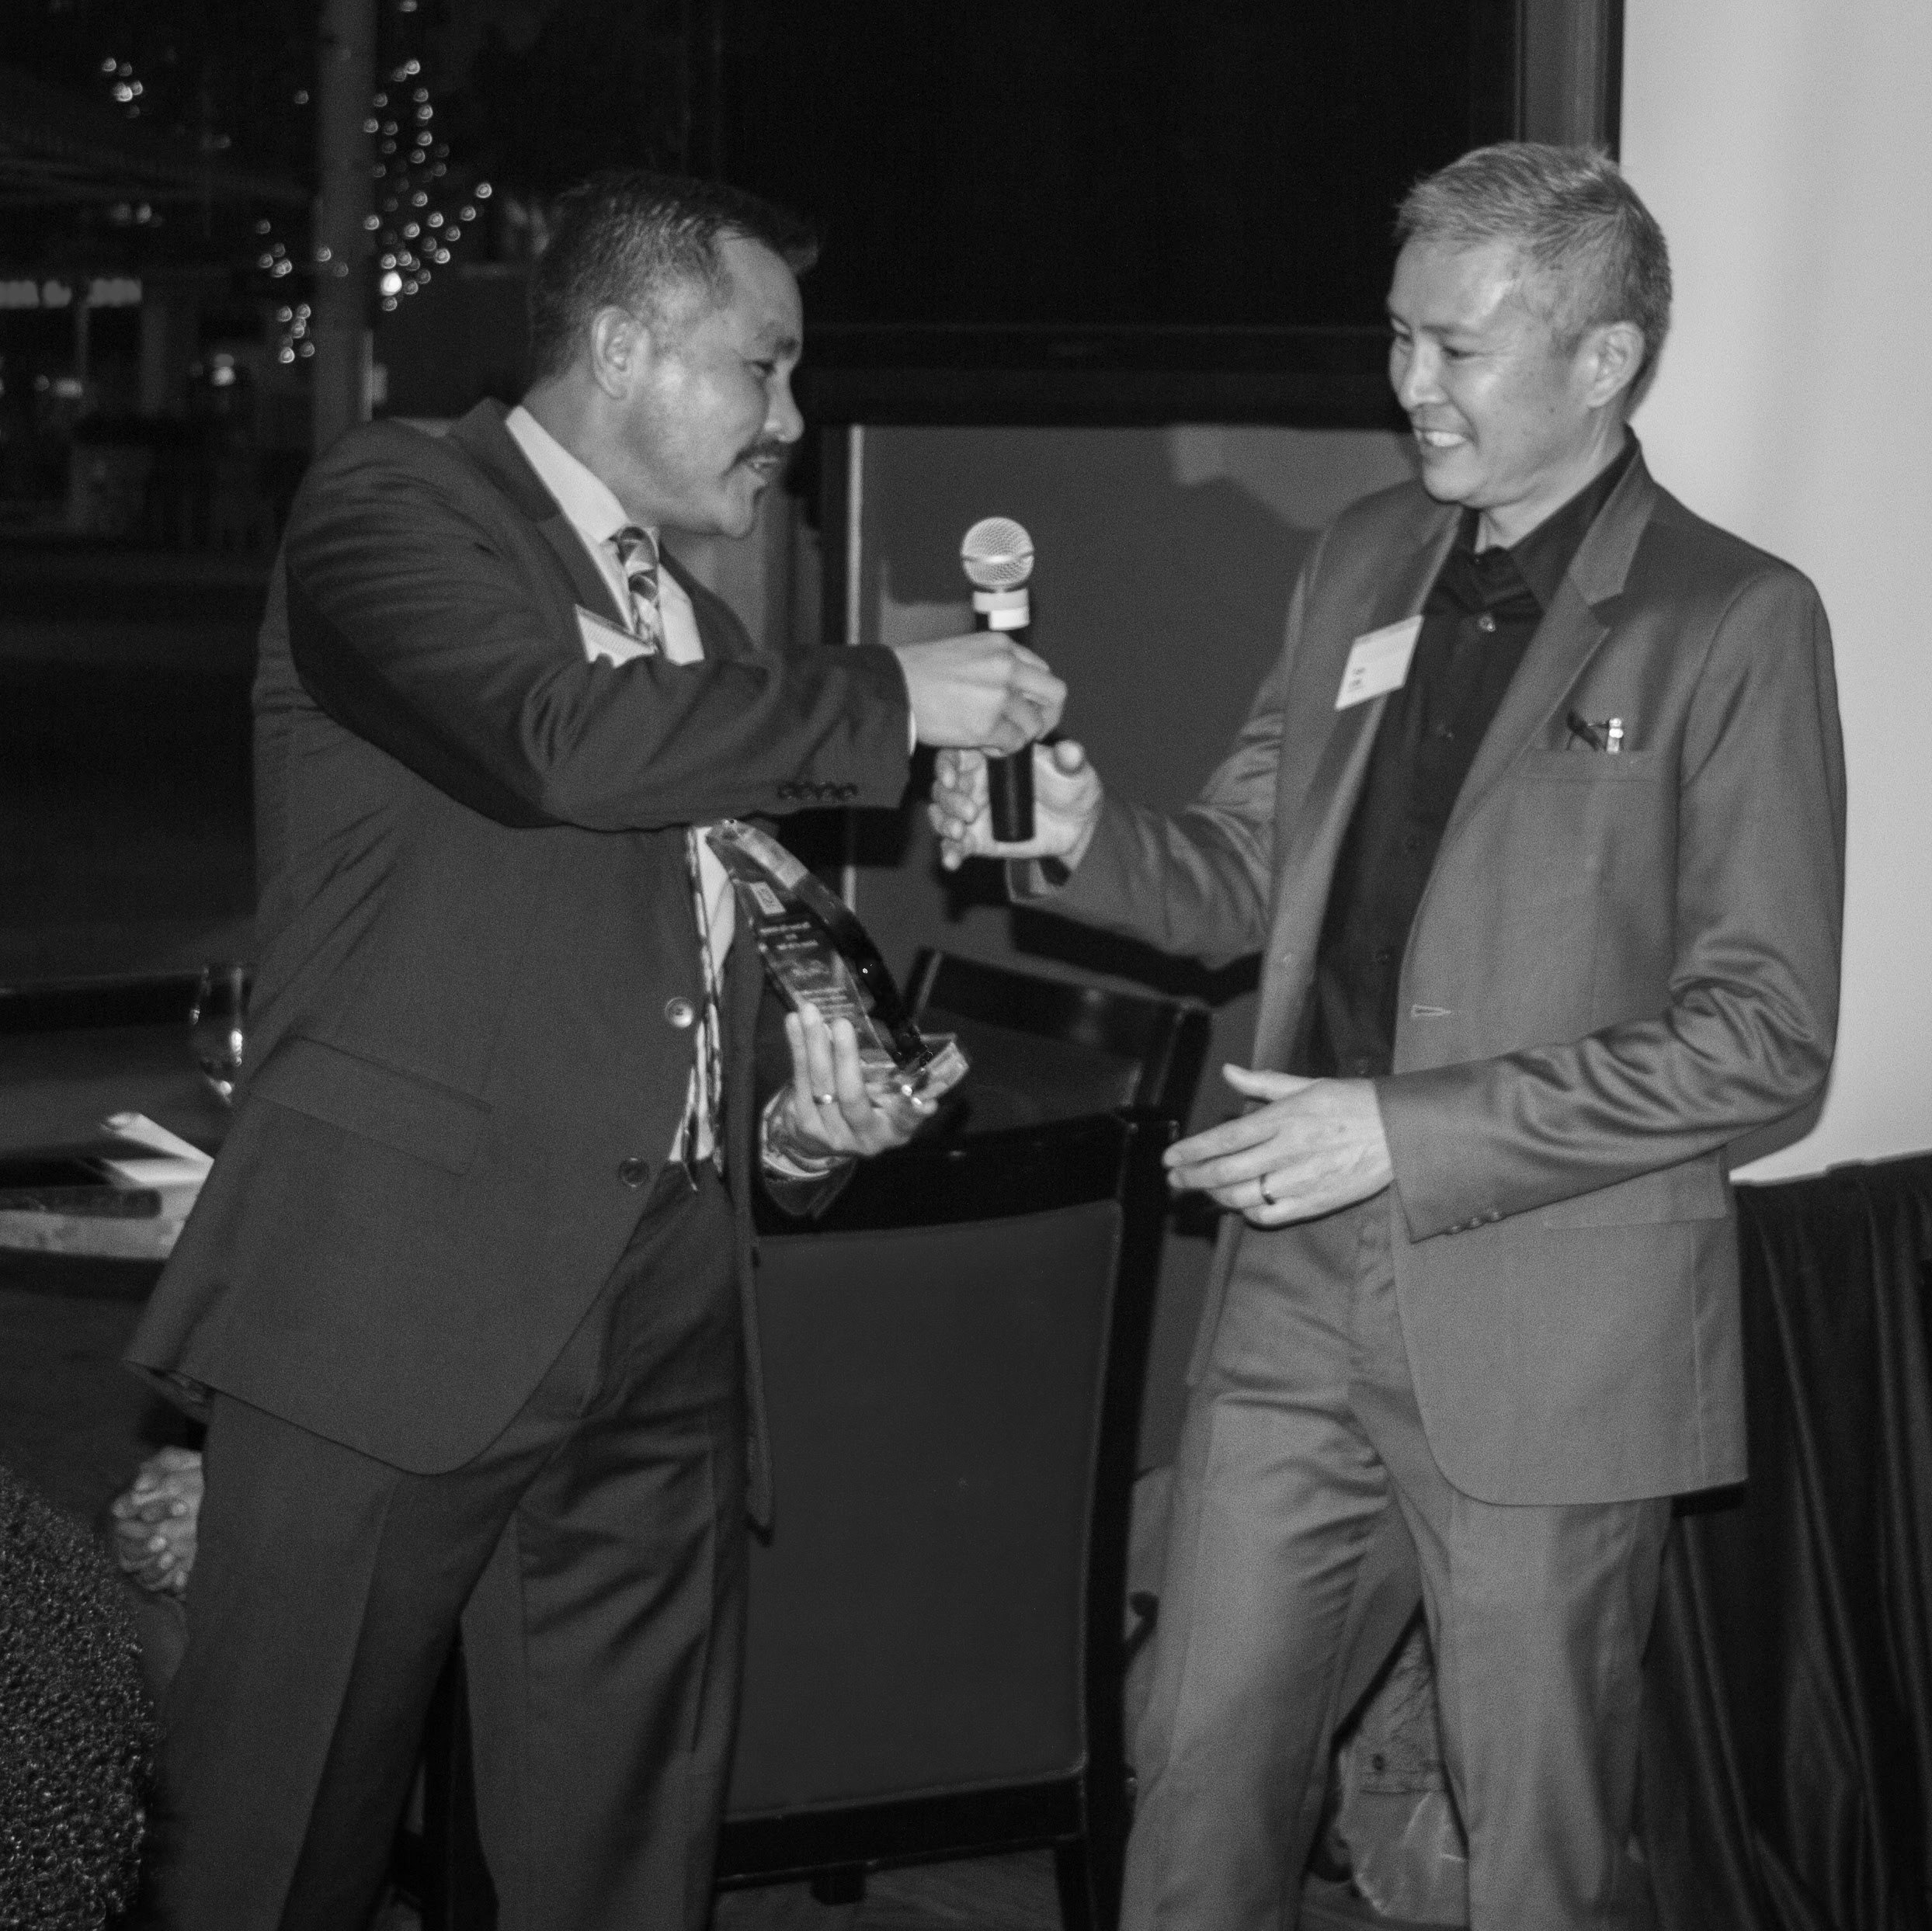 Tom was named 2014 Advisor of the Year by Inner City Advisors, which recognized him for his volunteer work with their portfolio companies. Jose Corona, CEO of ICA is on the left.    Photo by    Kelly McCann Photography   .